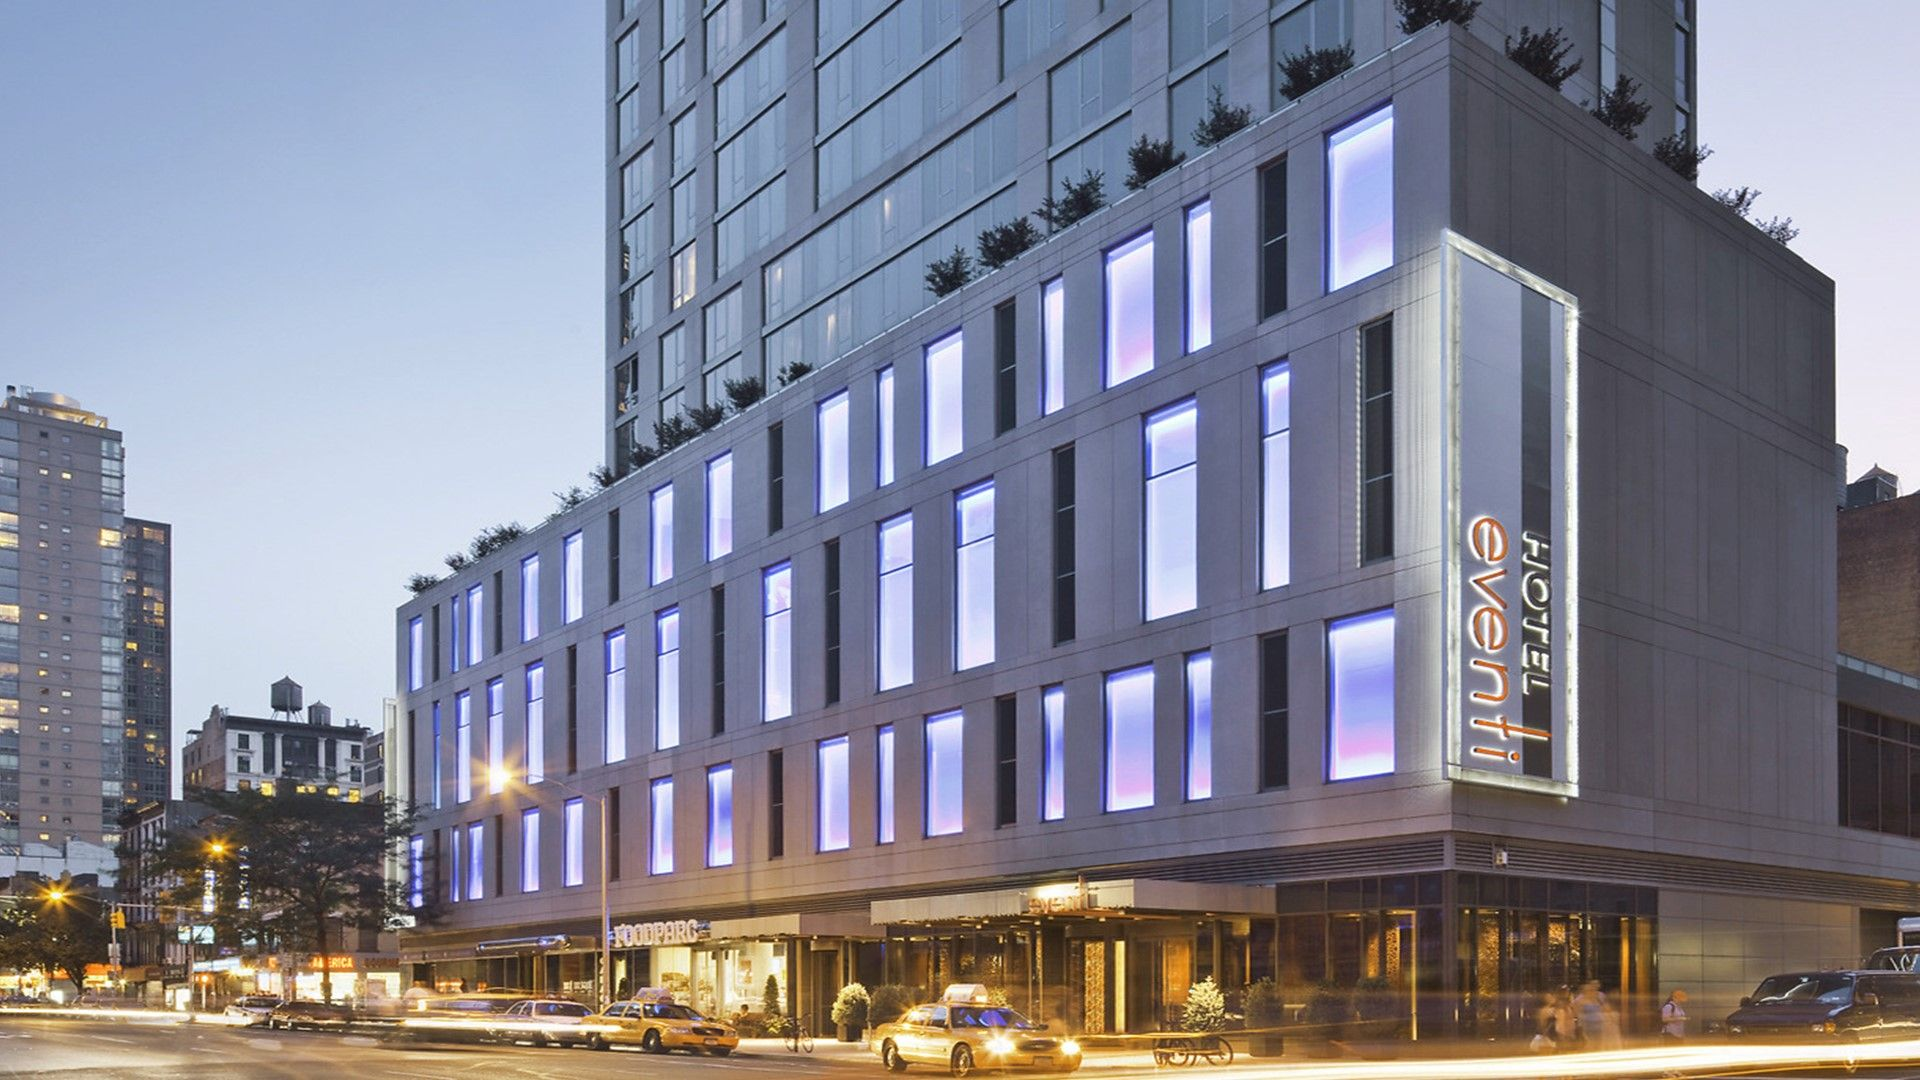 Eventi Hotel : Over 20,000 sq.ft. of meeting space, located in Midtown Manhattan.